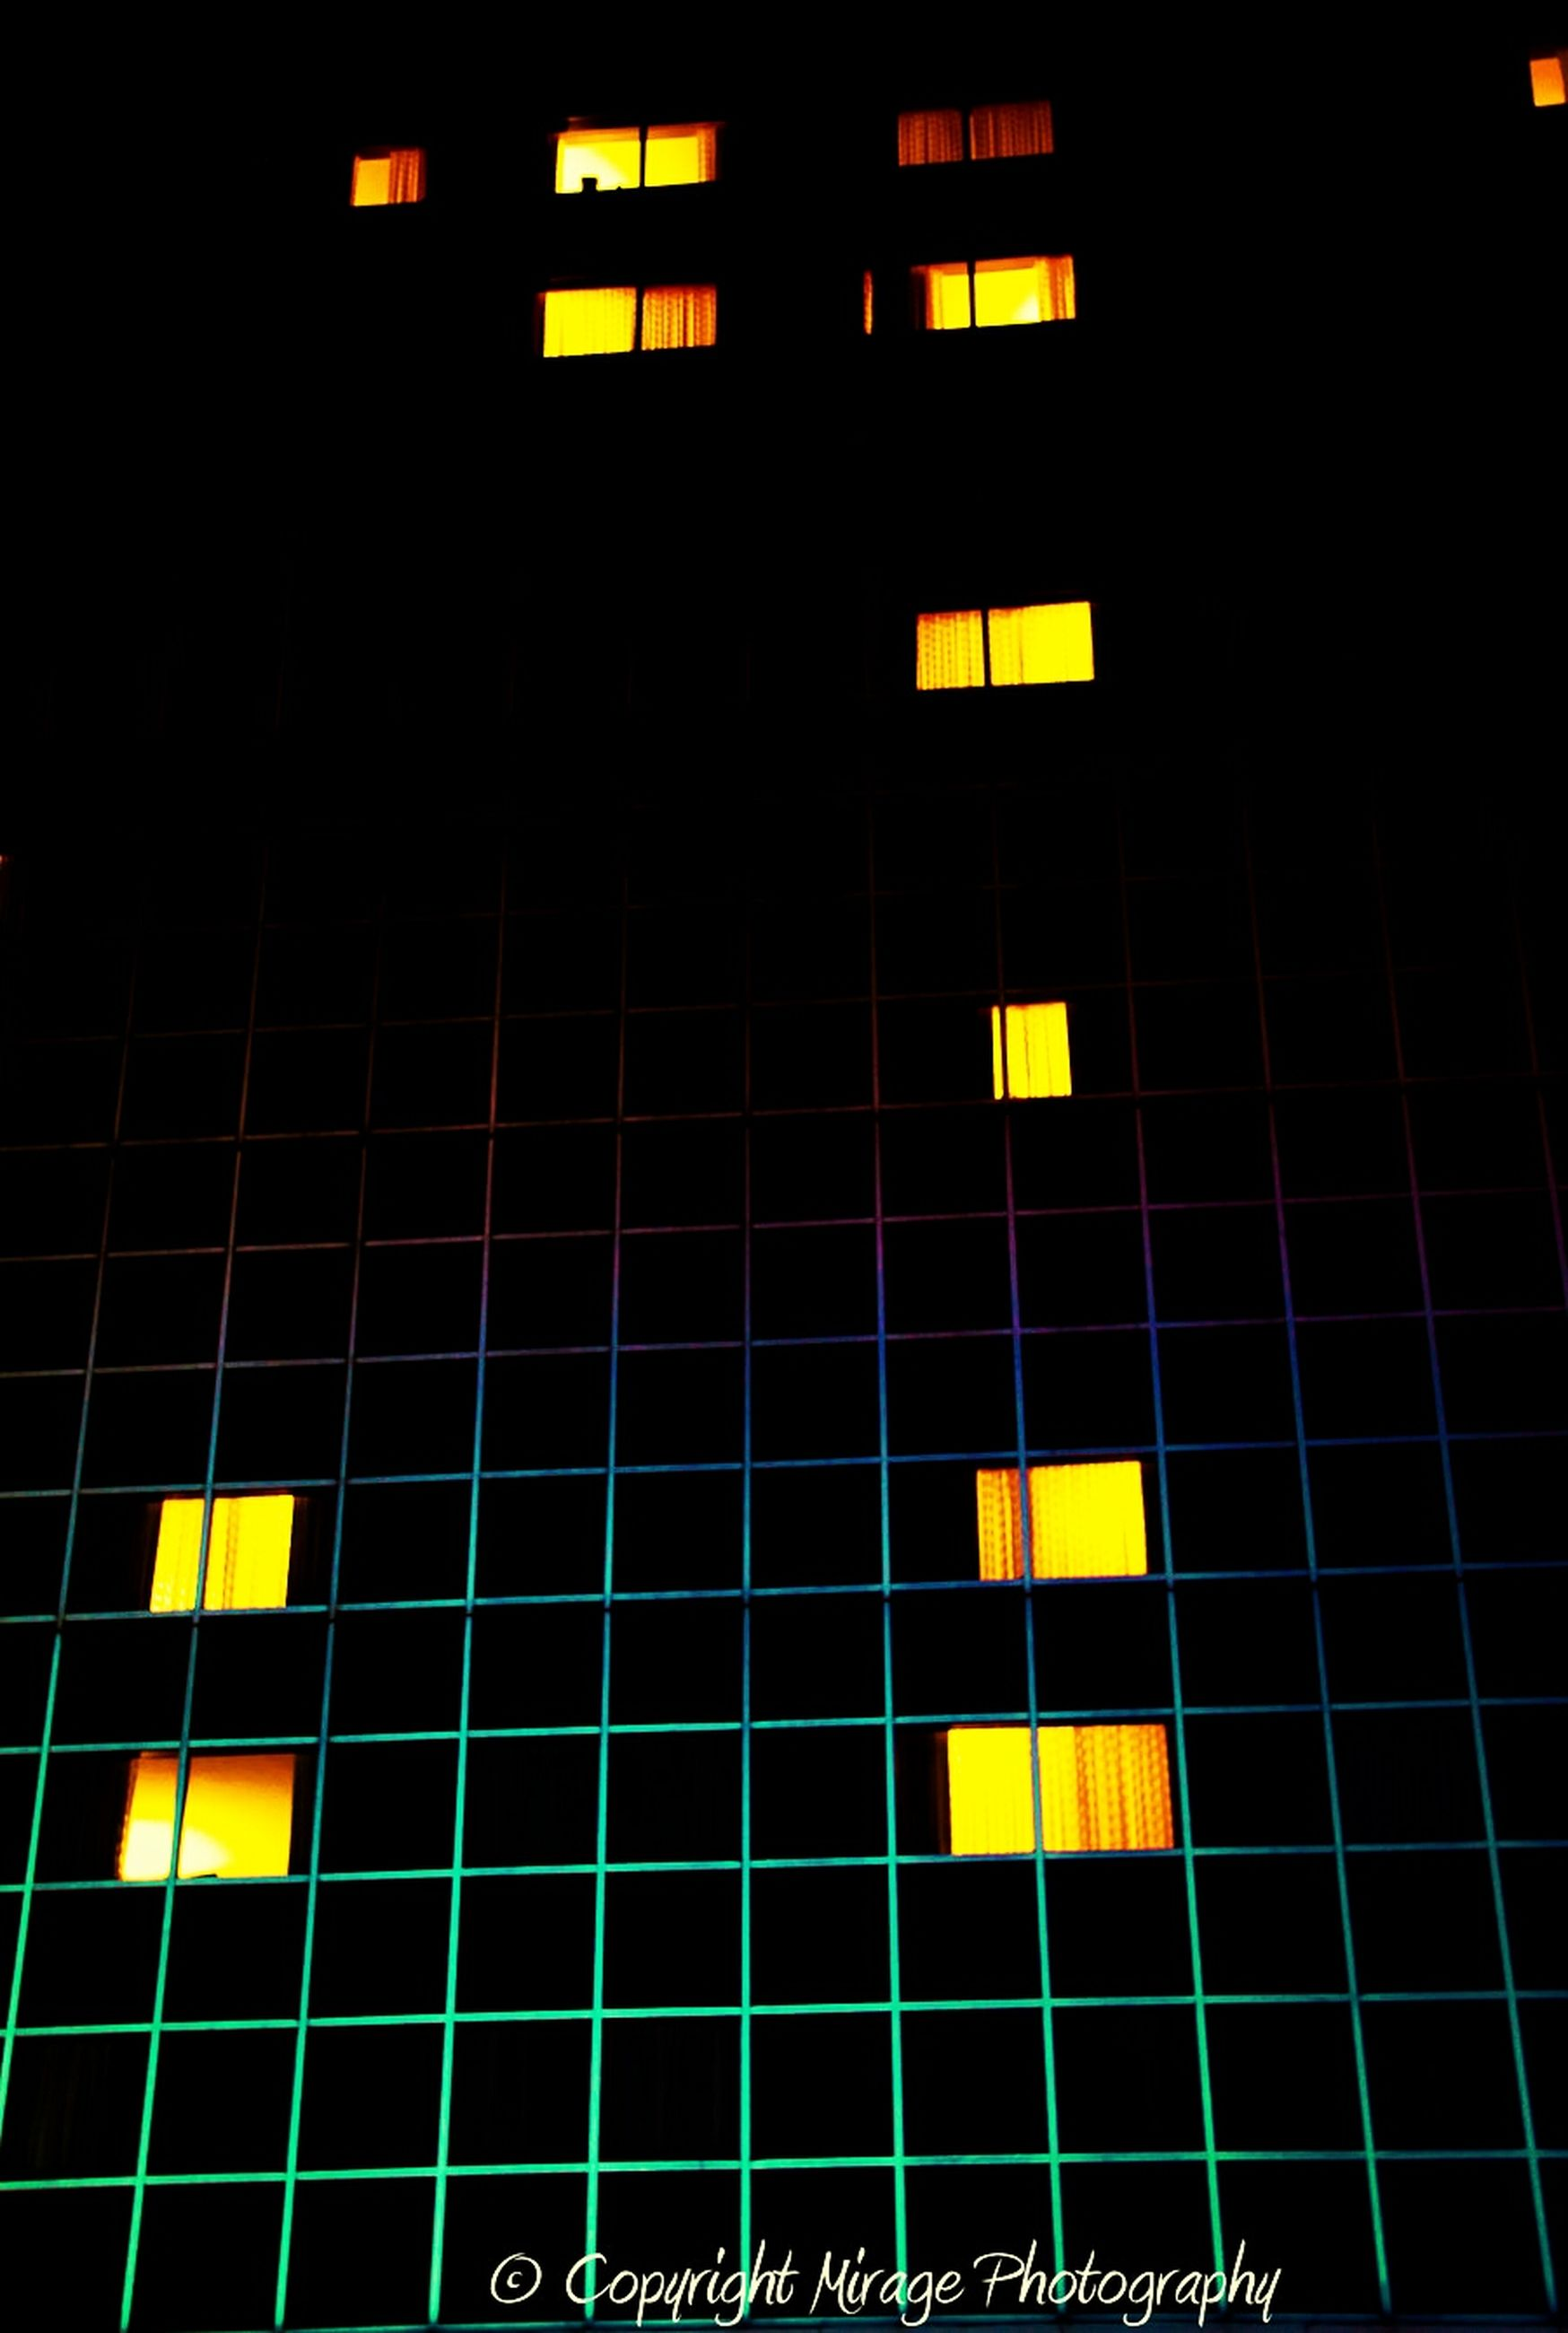 illuminated, architecture, built structure, yellow, building exterior, full frame, night, backgrounds, low angle view, pattern, window, building, city, modern, lighting equipment, no people, outdoors, repetition, geometric shape, glass - material